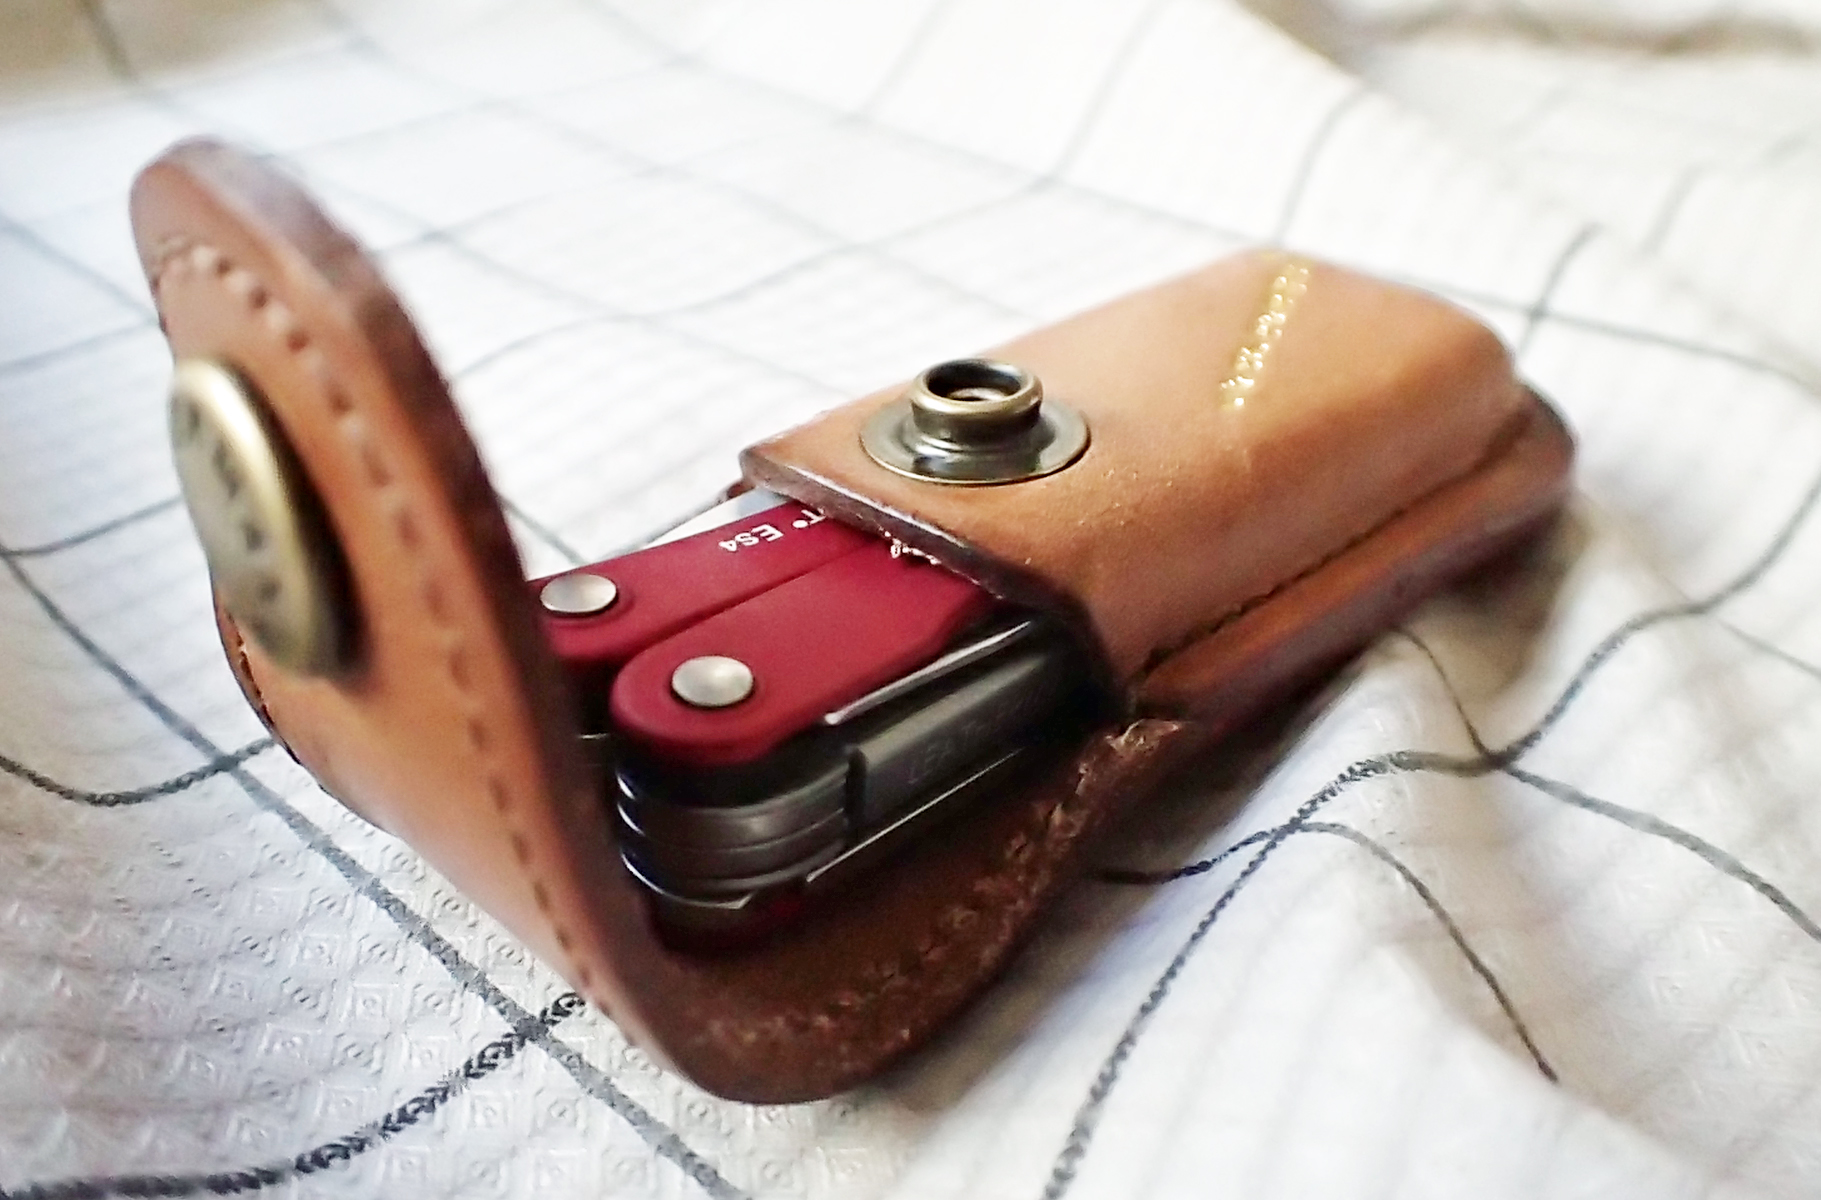 While you may not choose to carry one of the small Leatherman multi-tools as part of your hiking gear, they make great EDC items. Whichever you may purchase, one of the X-small leather Heritage sheaths produced by Leatherman to celebrate their 35th birthday in 2018 makes a great holder